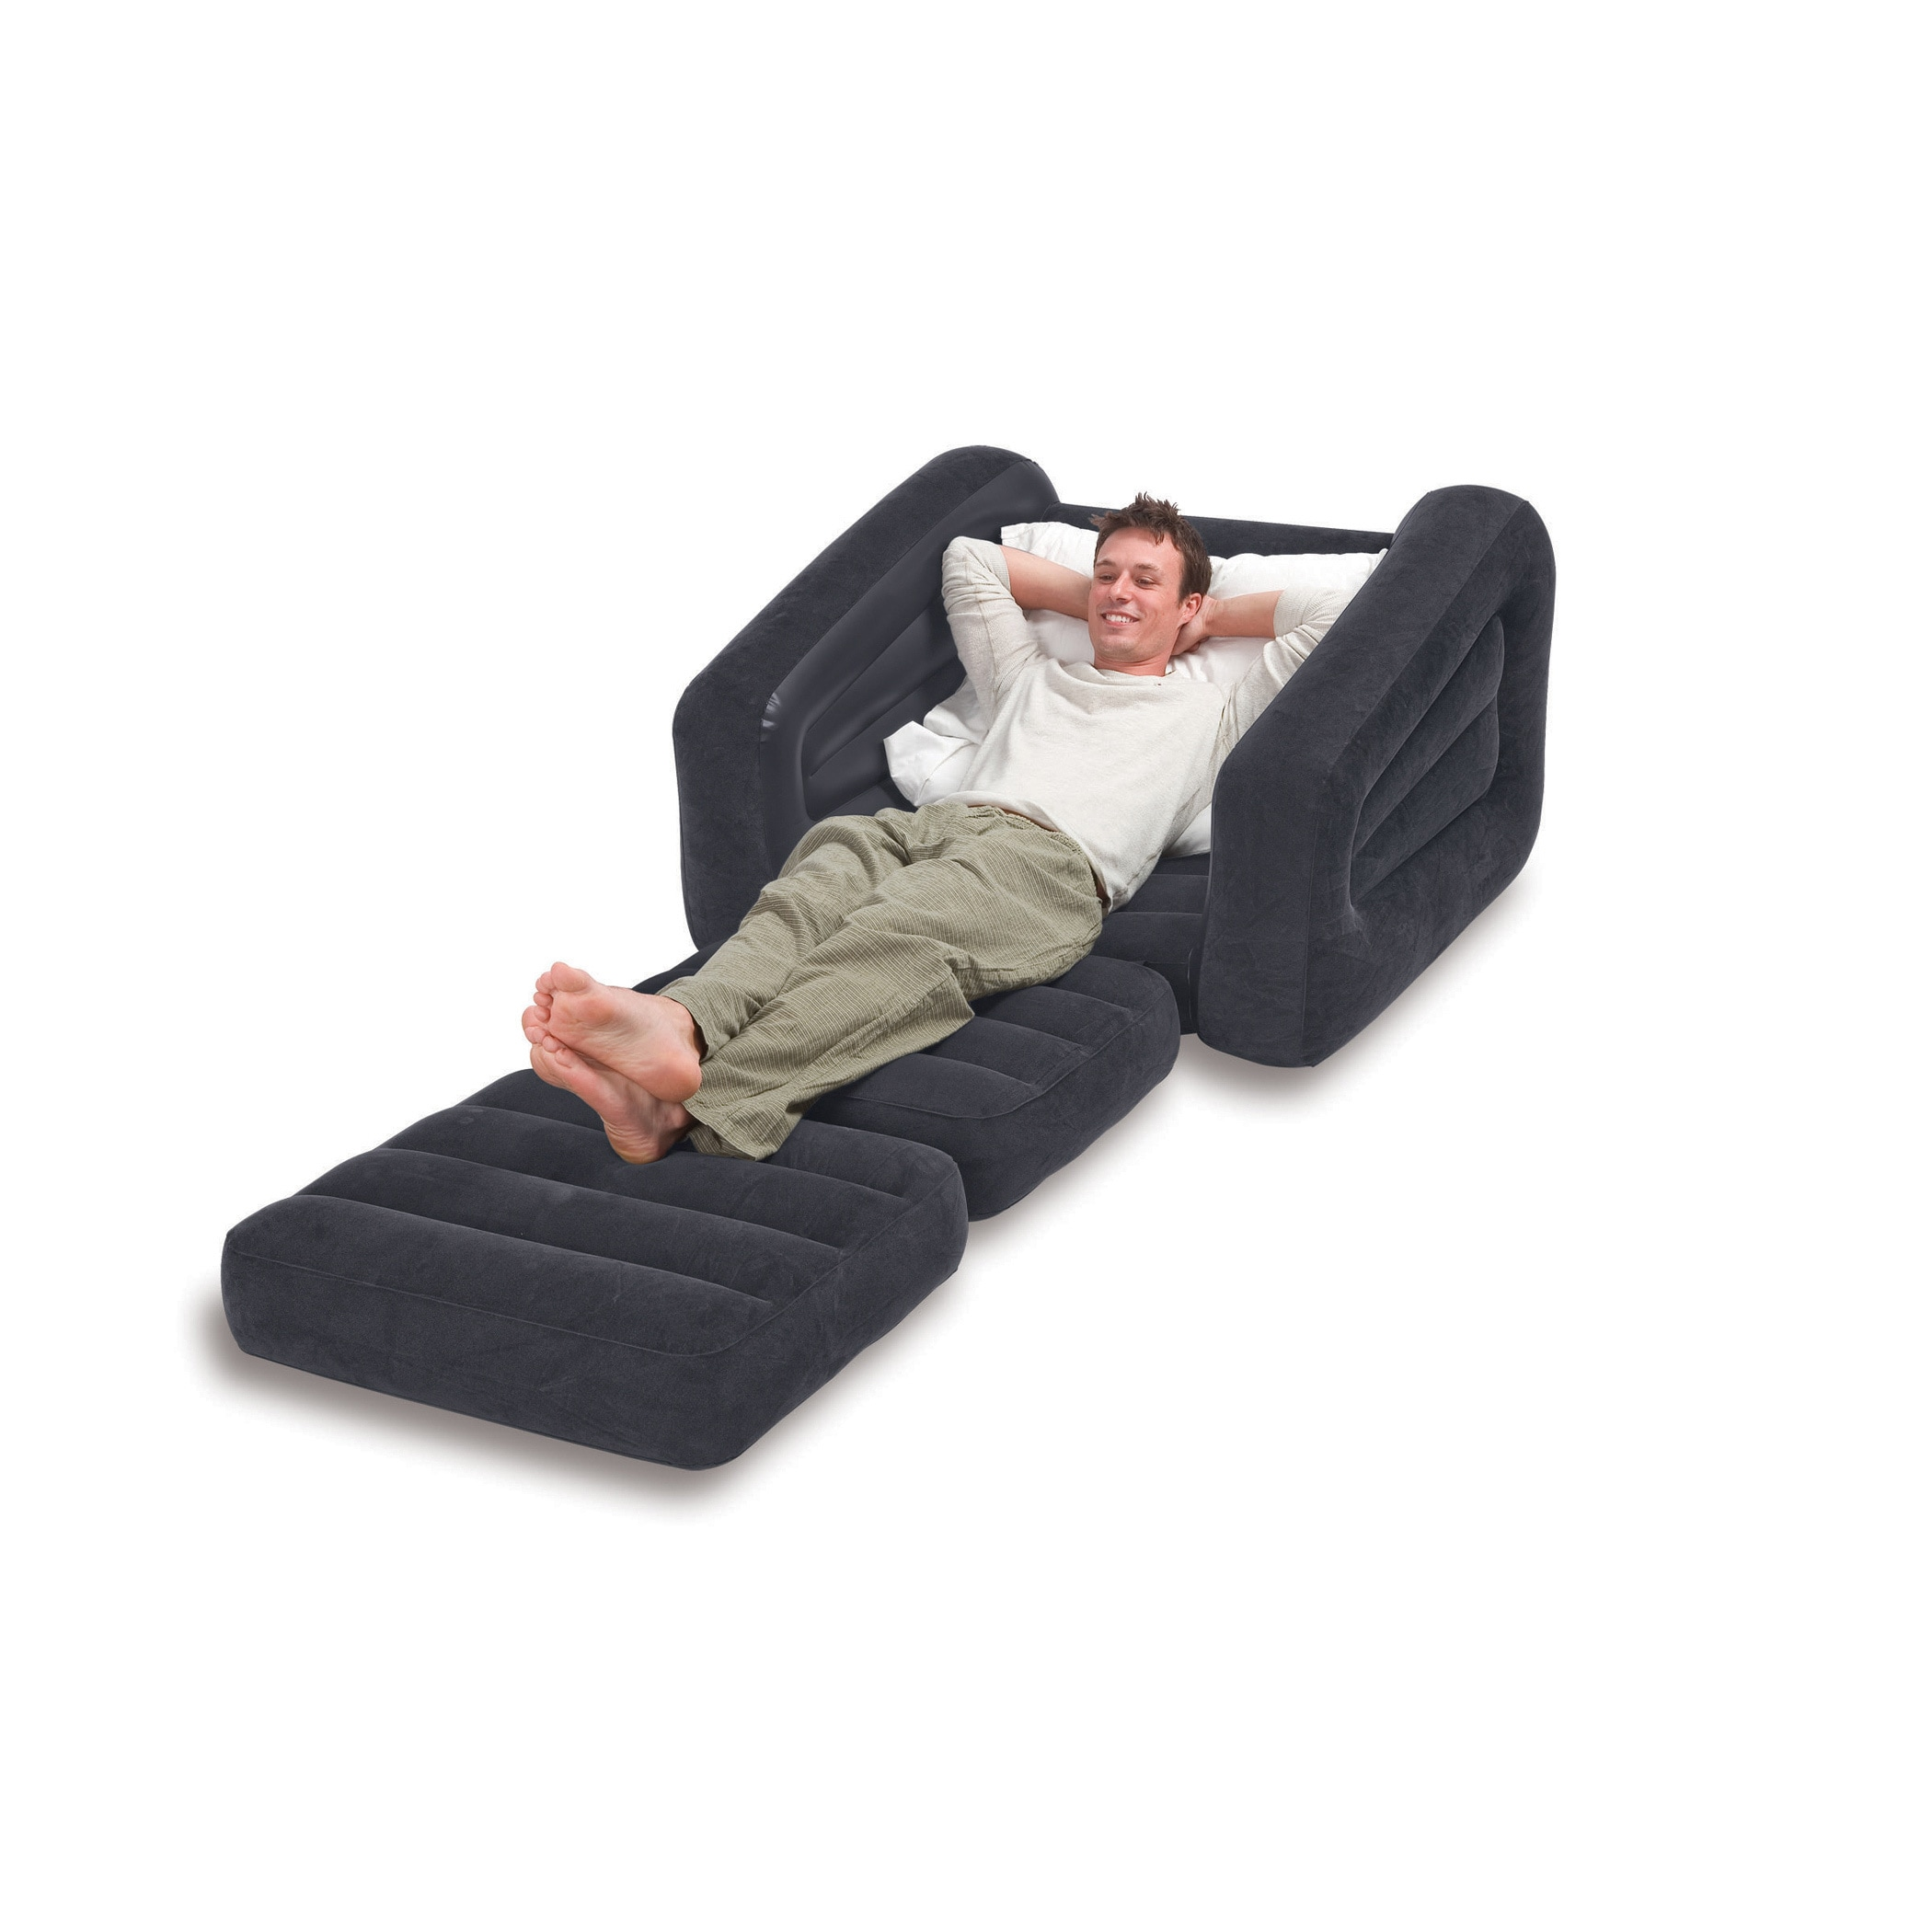 Inflatable Air Chair with Pull Out Twin Bed Mattress Sleeper Gray Intex New